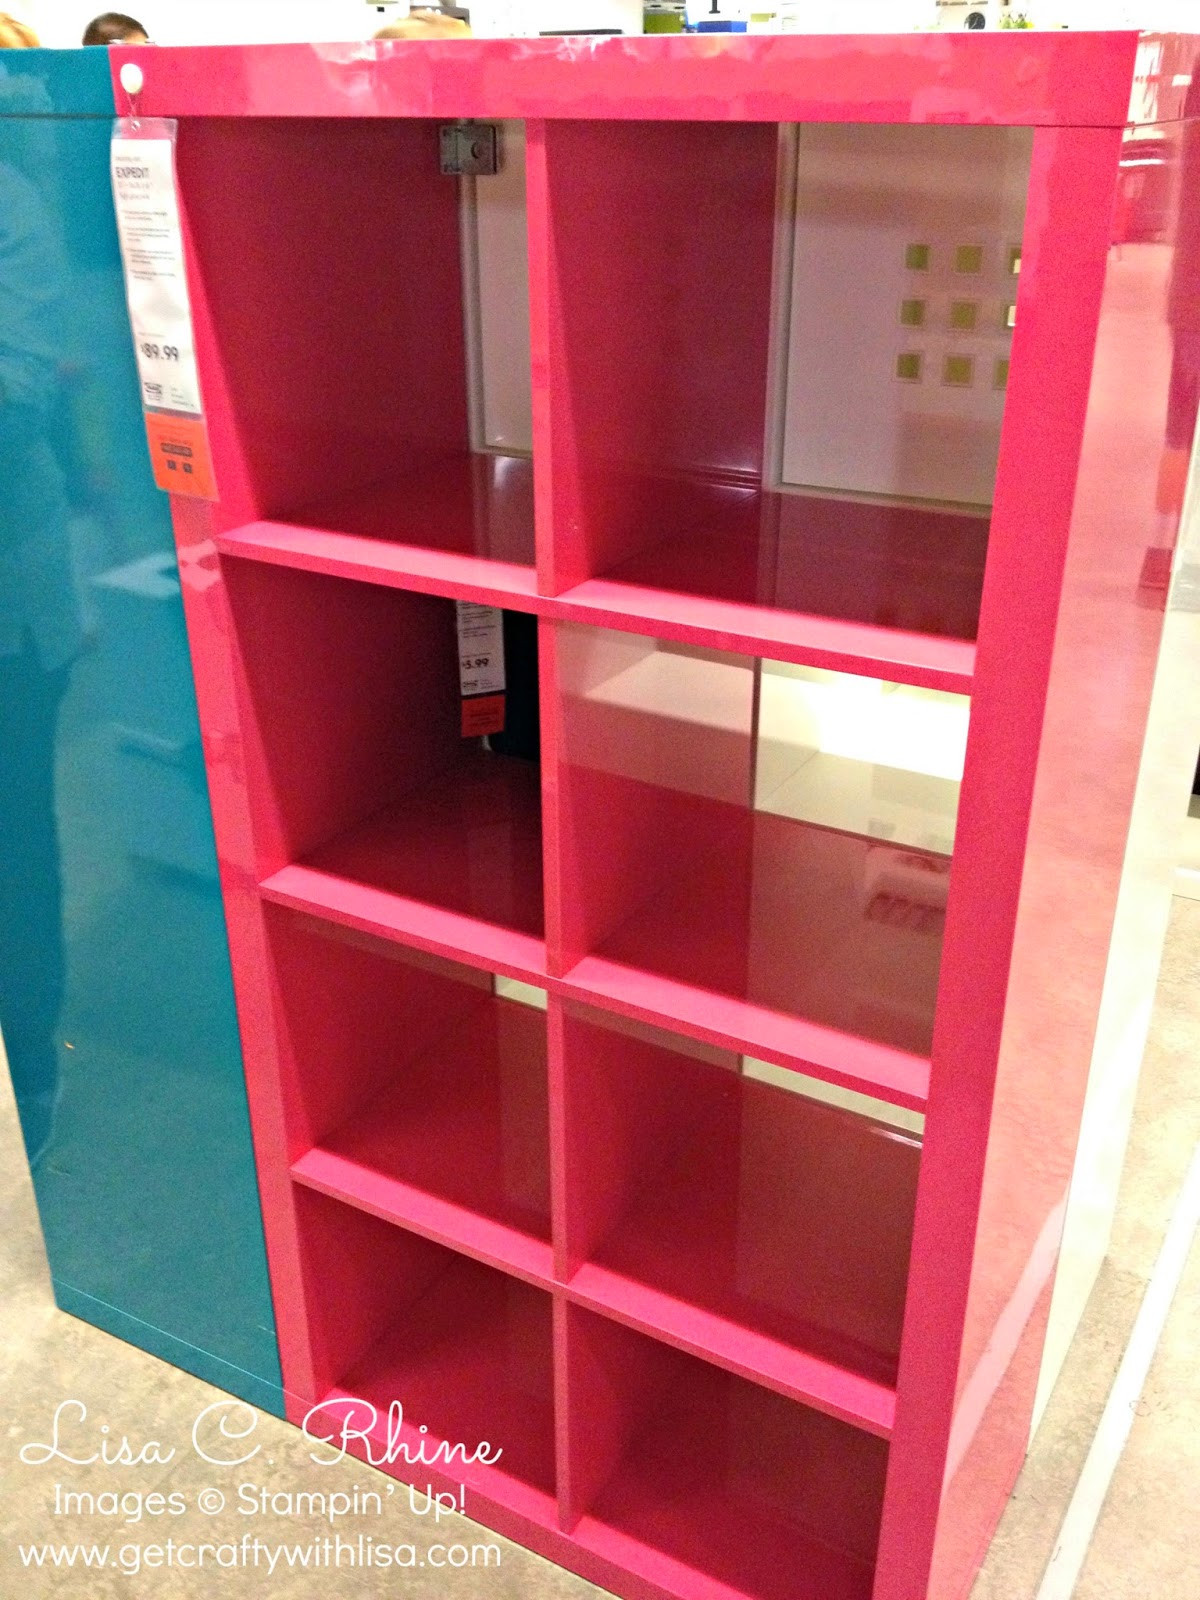 Best ideas about Ikea Storage Ideas . Save or Pin Get Crafty with Lisa IKEA Craft Storage Ideas & Mini Blog Hop Now.